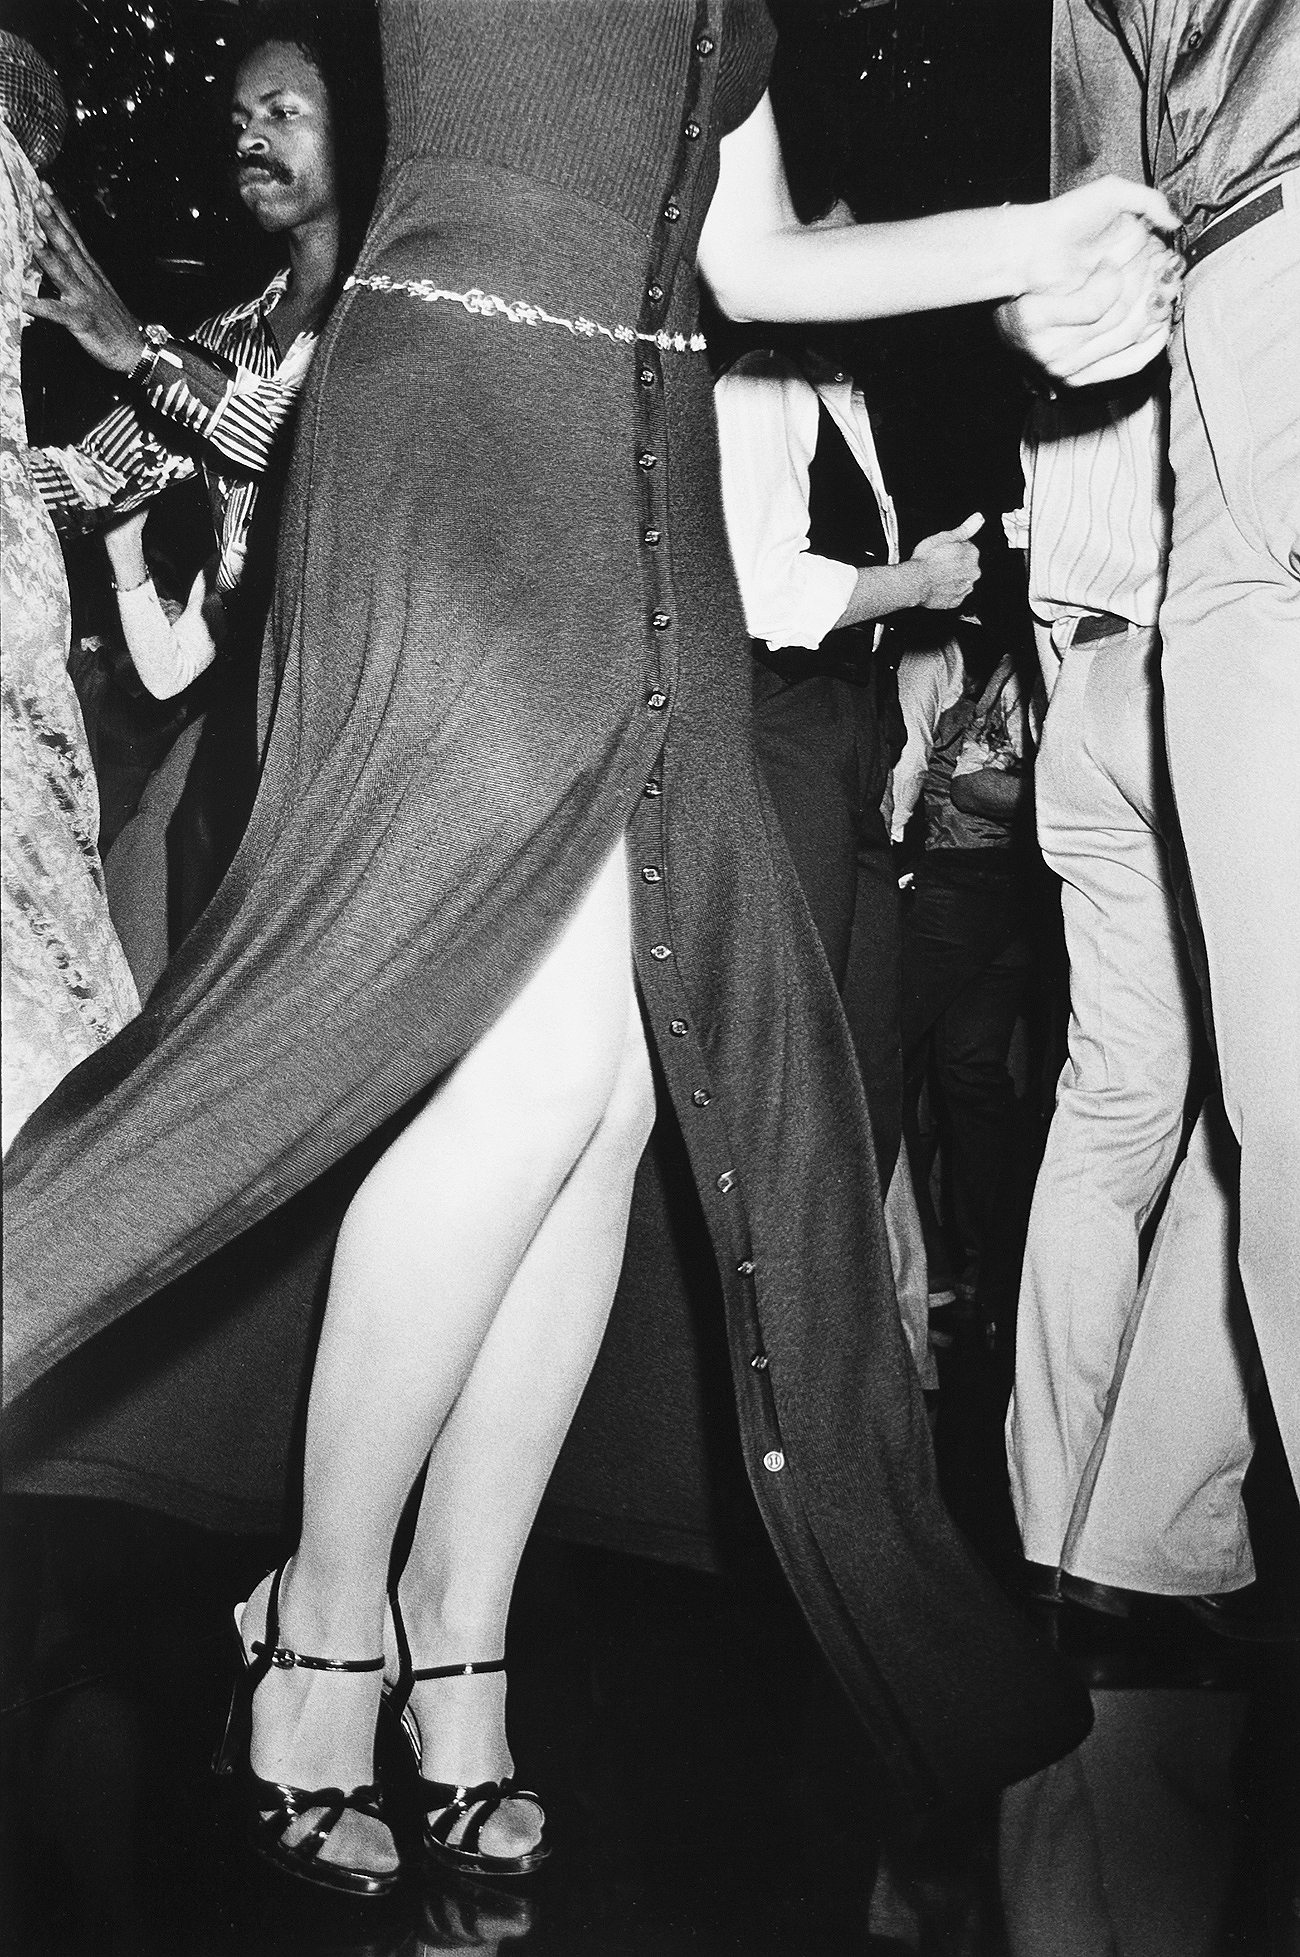 Tony_Ward_photography_early_work_Night_Fever_portfolio_1970's_erotic_dirty_dancing_couples_grinding_upskirt